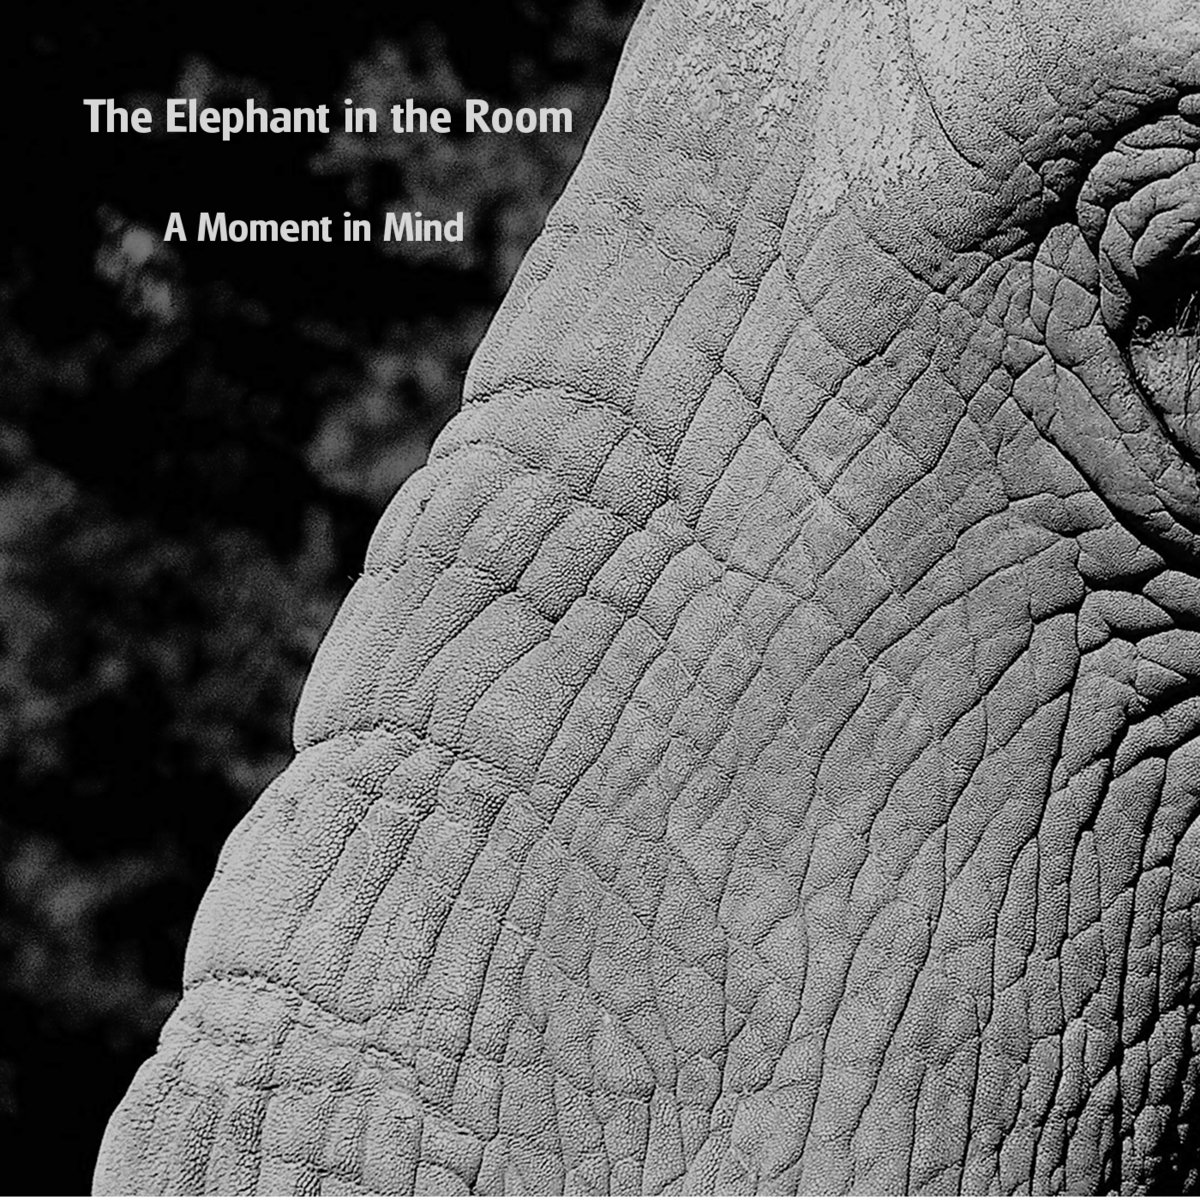 Elephant In Room That Needs To Be >> This Has To Be A Dream Or A Nightmare The Elephant In The Room